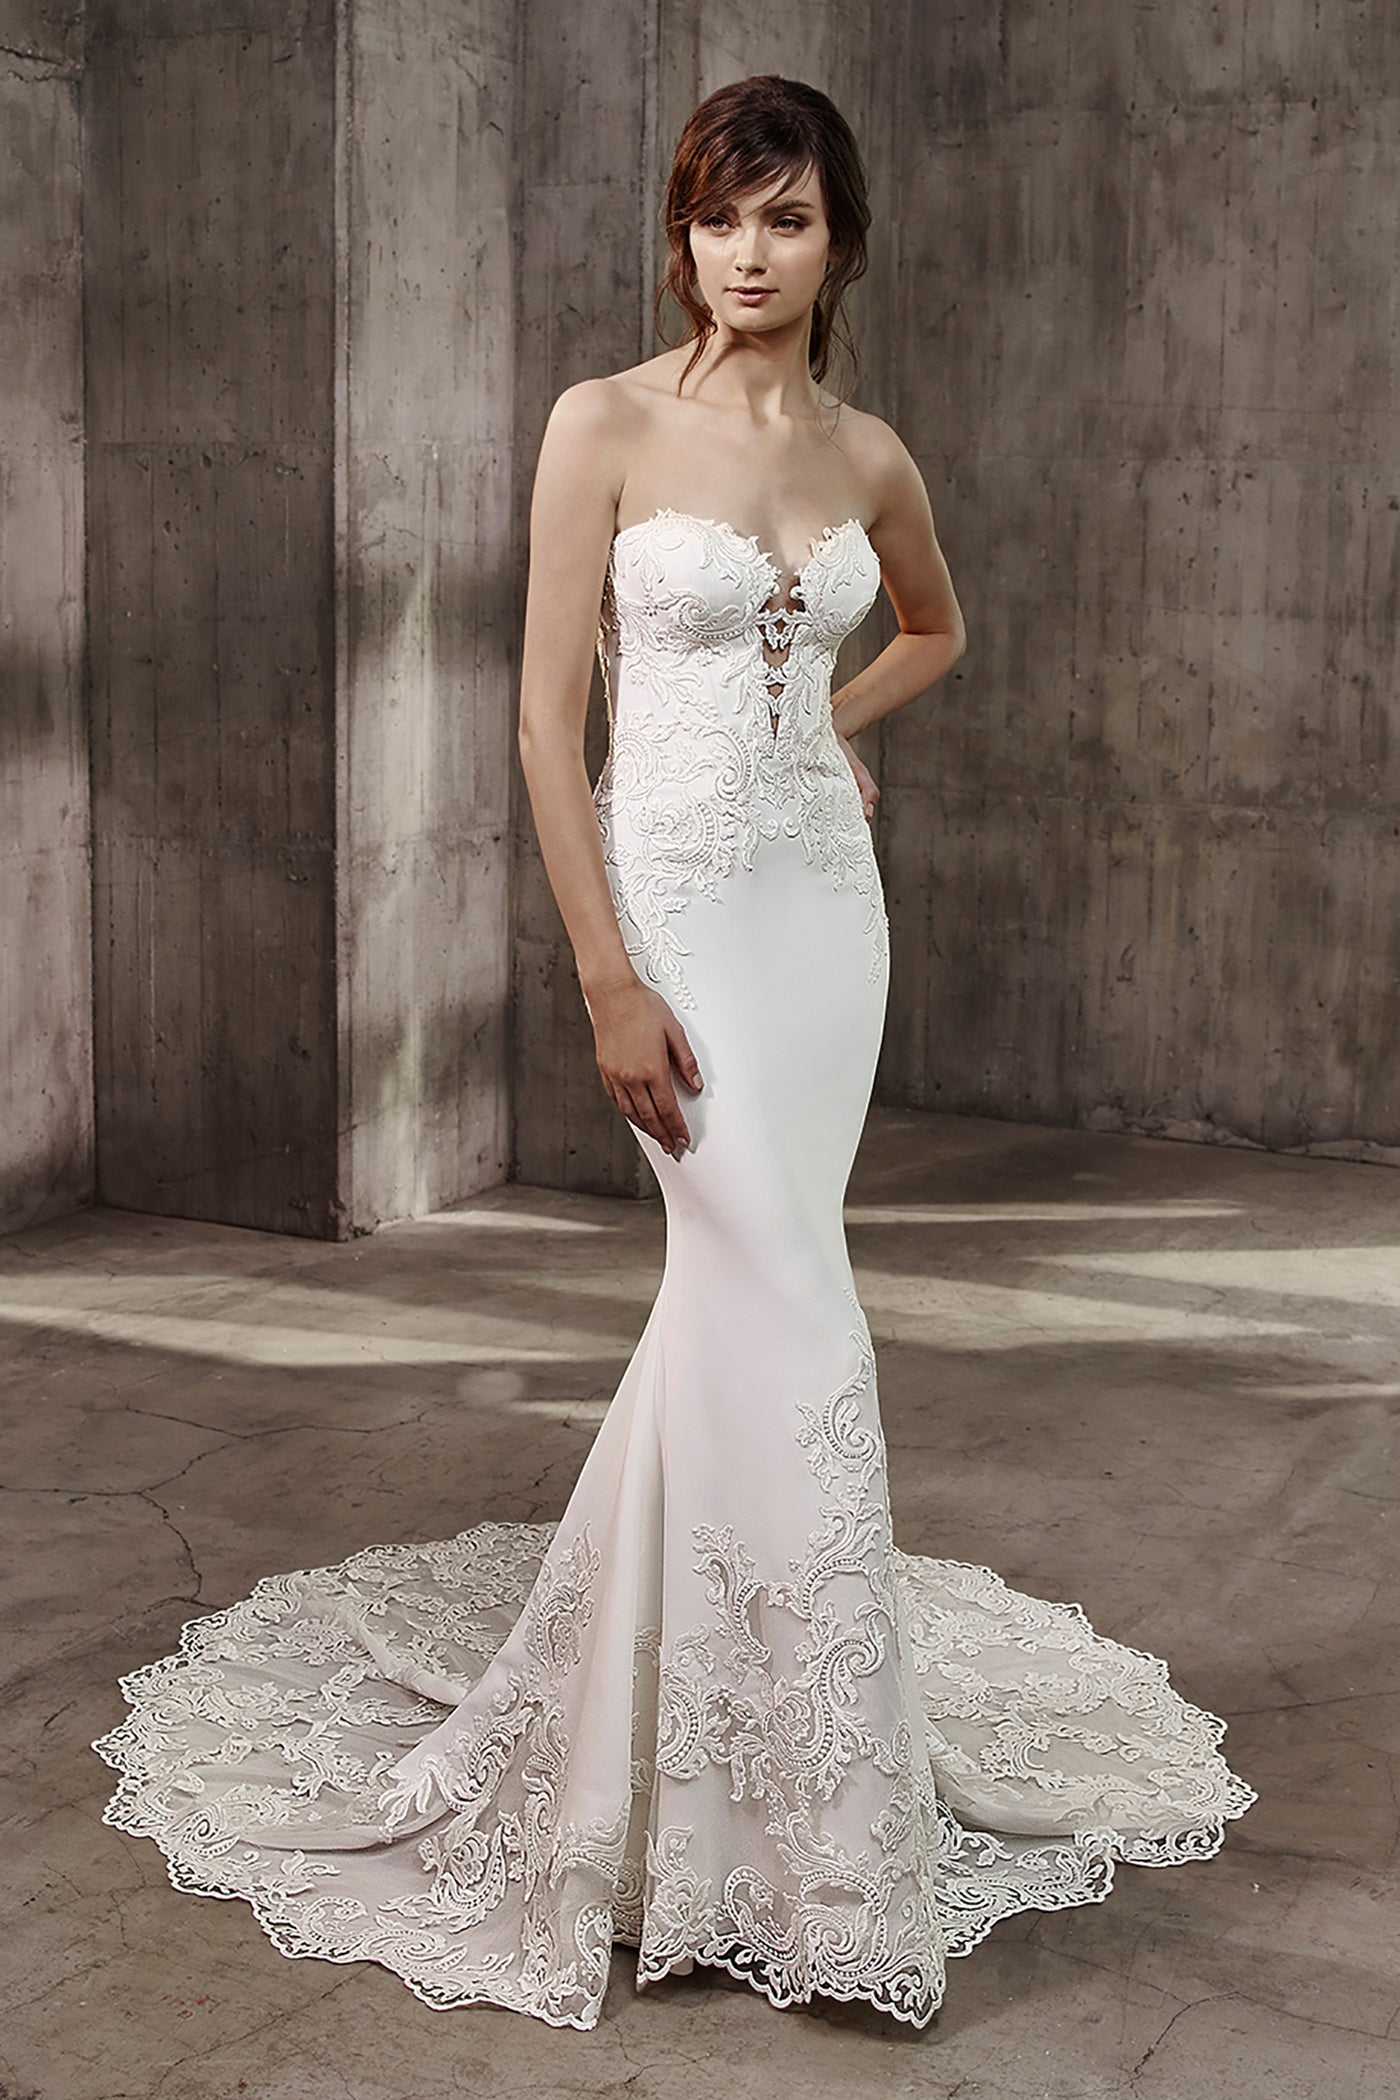 Autumn - Gown - Badgley Mischka Bride - Eternal Bridal